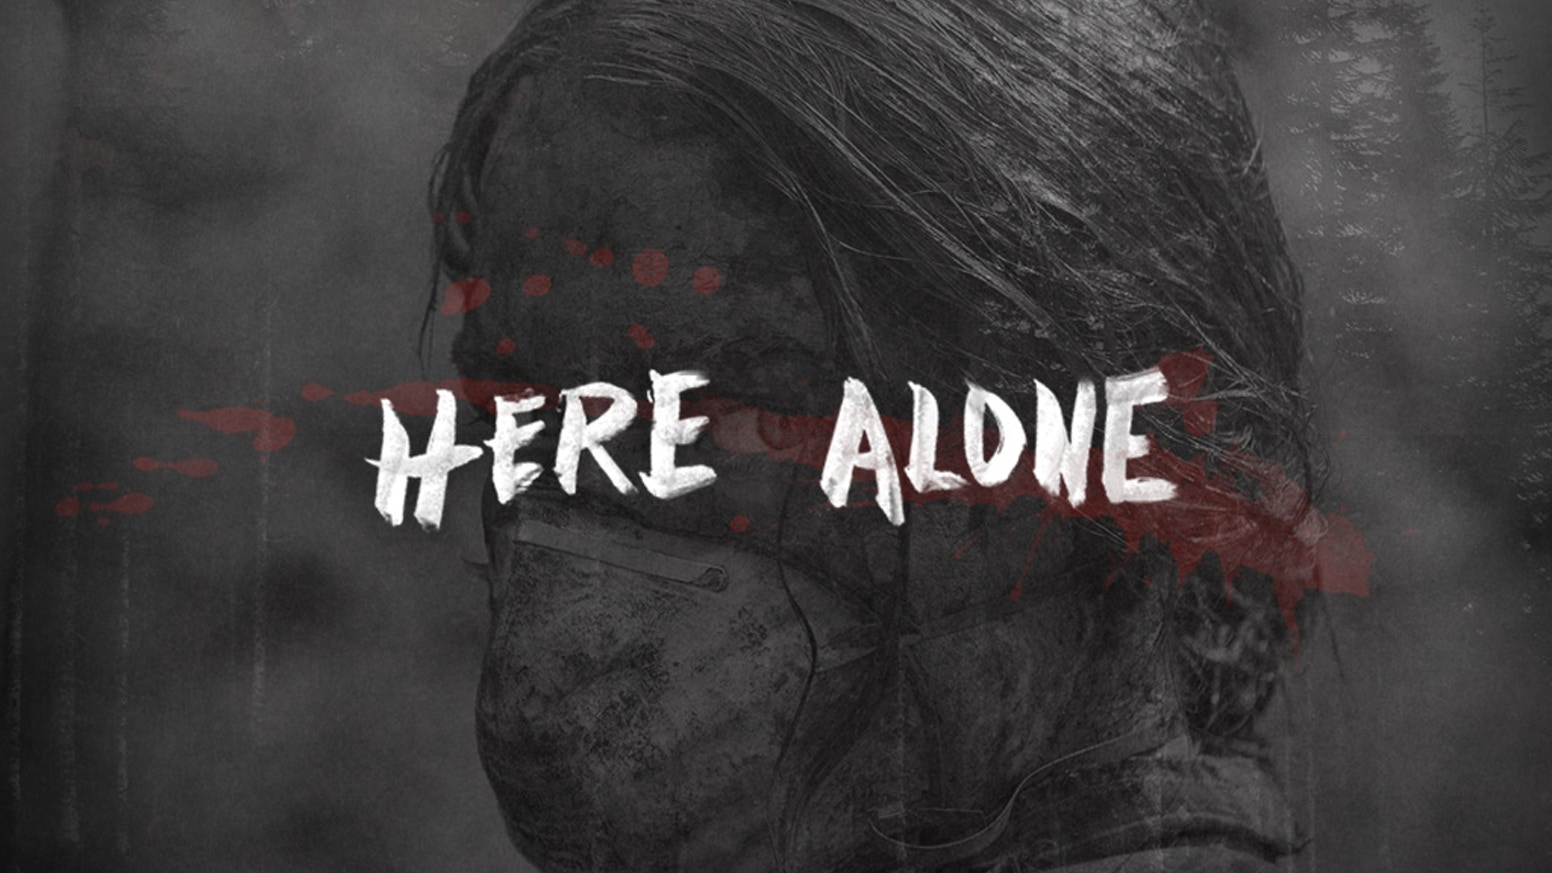 A post apocalyptic thriller film starring LUCY WALTERS, ADAM DAVID THOMPSON,  GINA PIERSANTI and SHANE WEST needs your help finishing the movie.